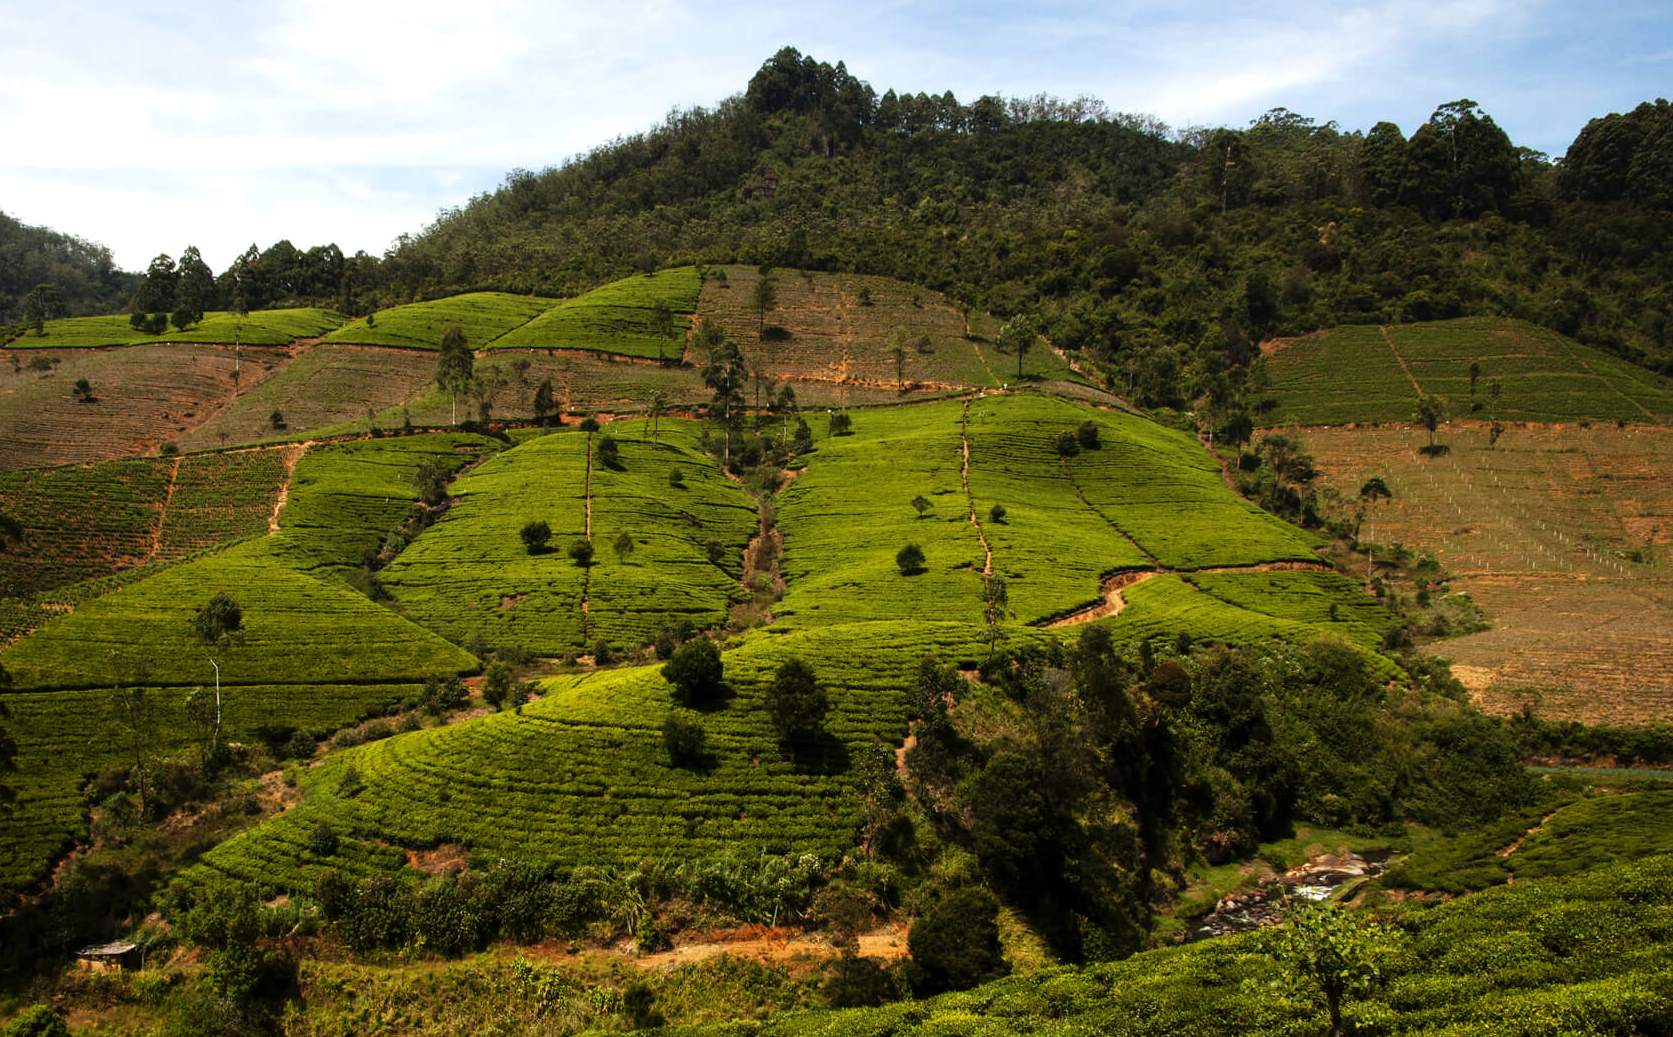 Farming Pure Ceylon Tea - Picture Shows a Conventional Tea Plantation in the Central Highlands